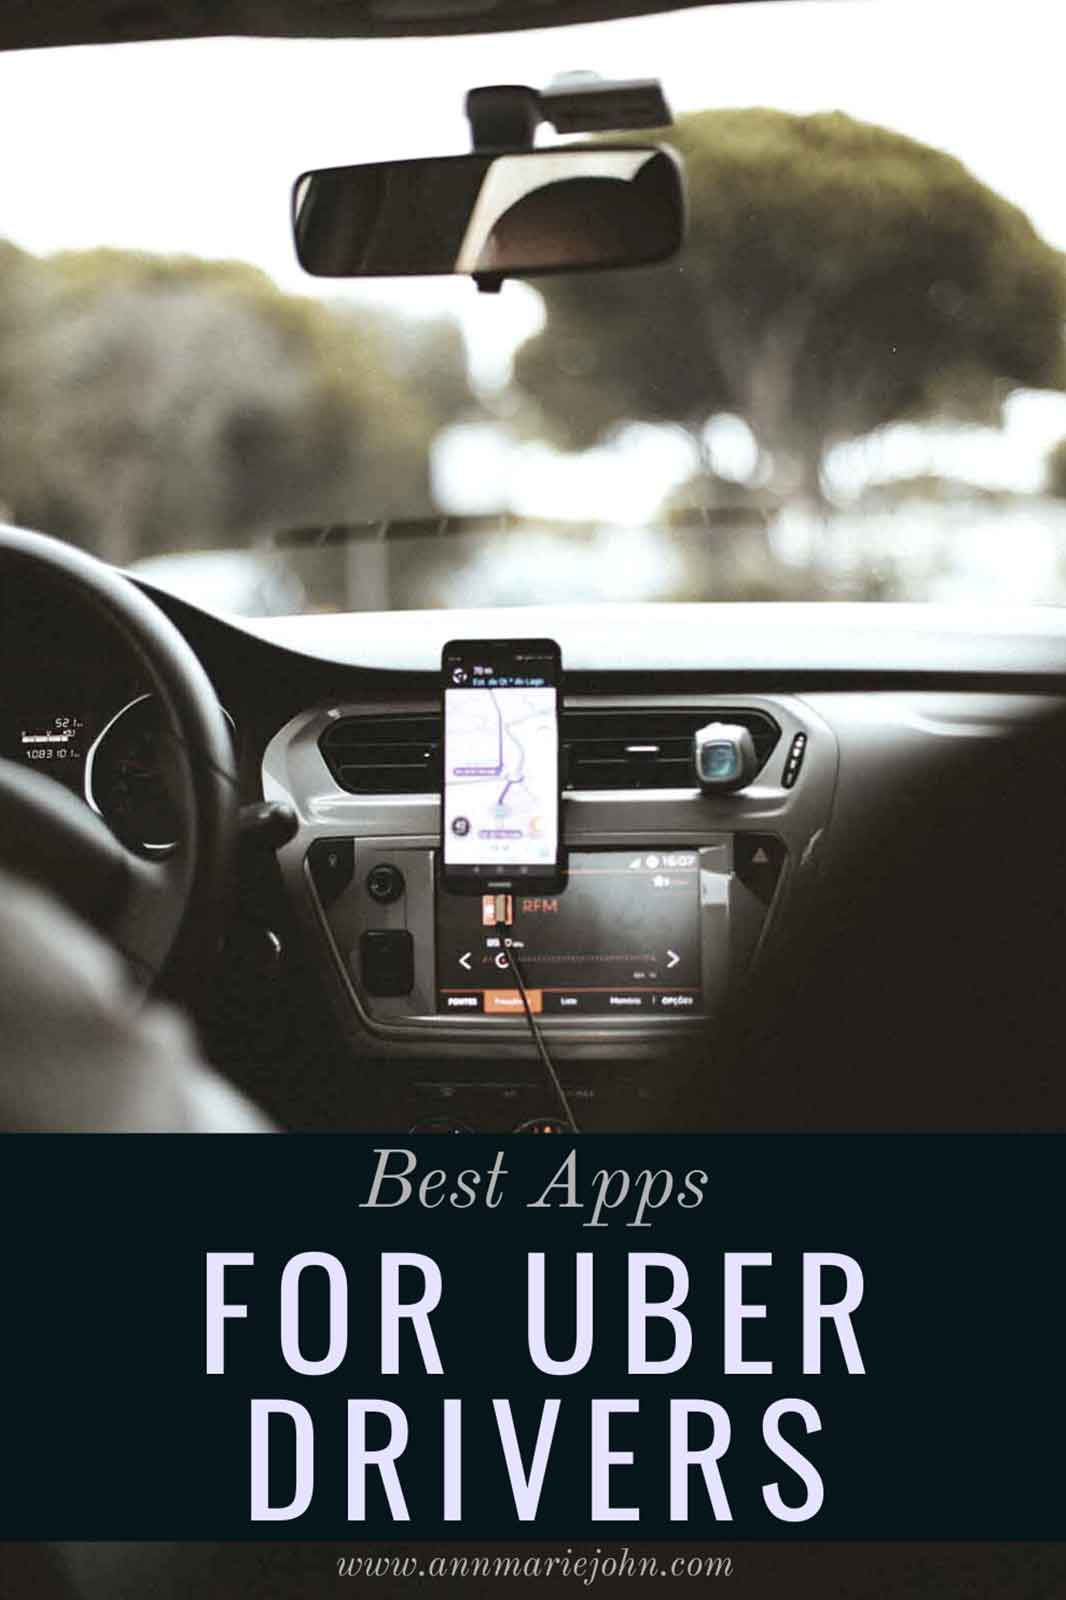 Best Apps For Uber Drivers